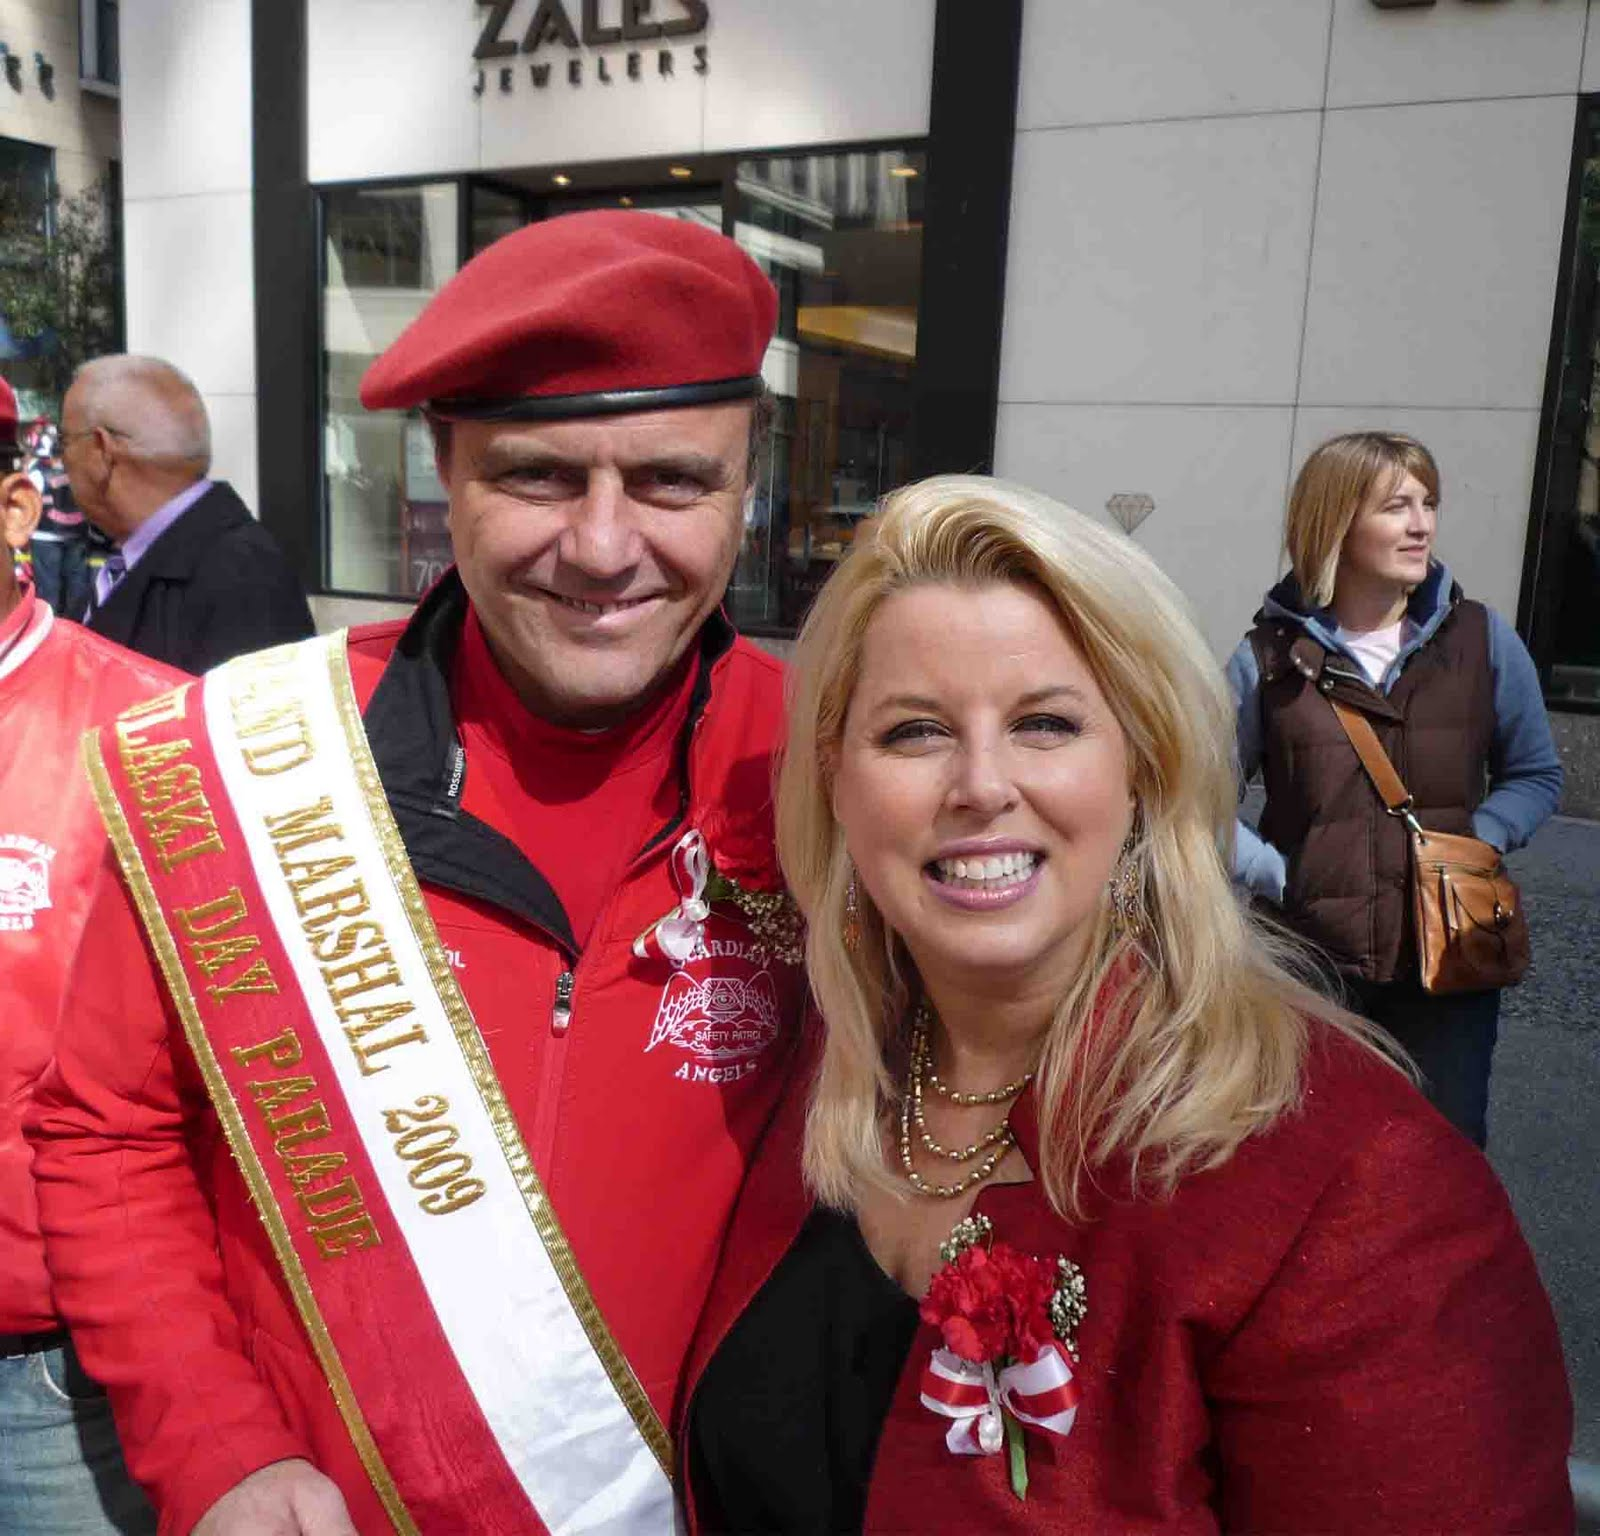 Times Square Gossip: RITA COSBY AT ANNUAL PULASKI DAY PARADE